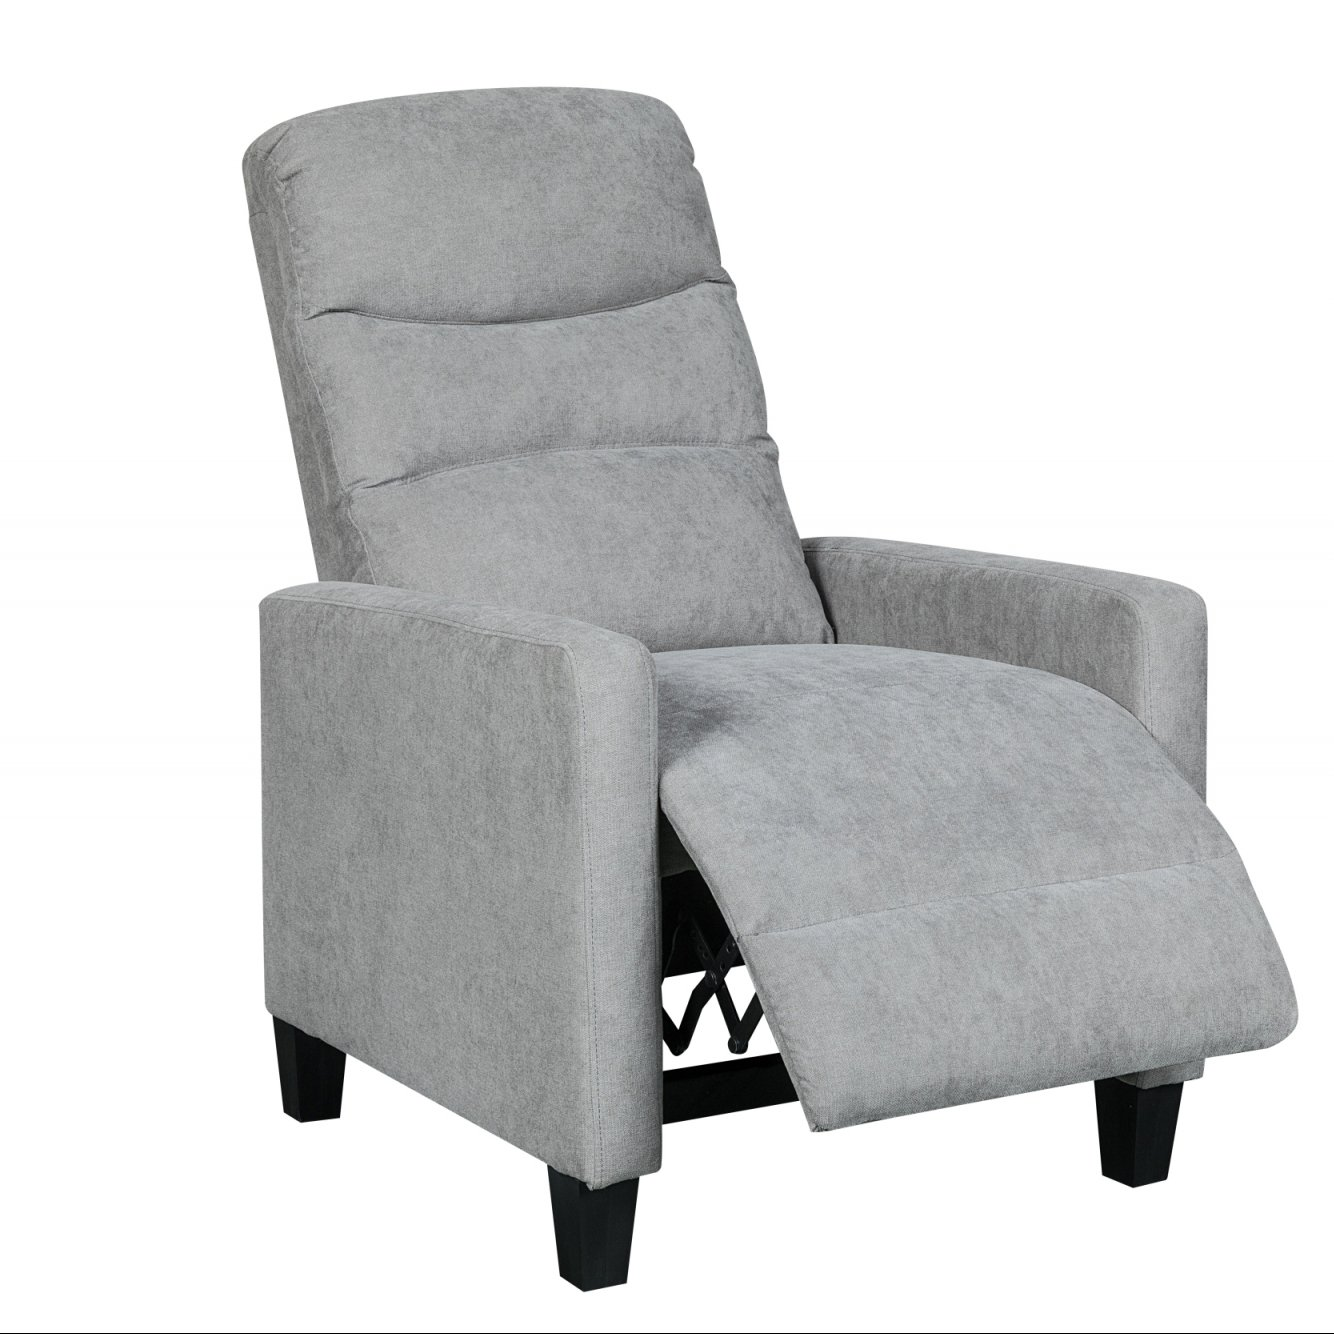 deco in paris 7 fauteuil relax en tissu gris fonce kirian kirian gris fonce. Black Bedroom Furniture Sets. Home Design Ideas